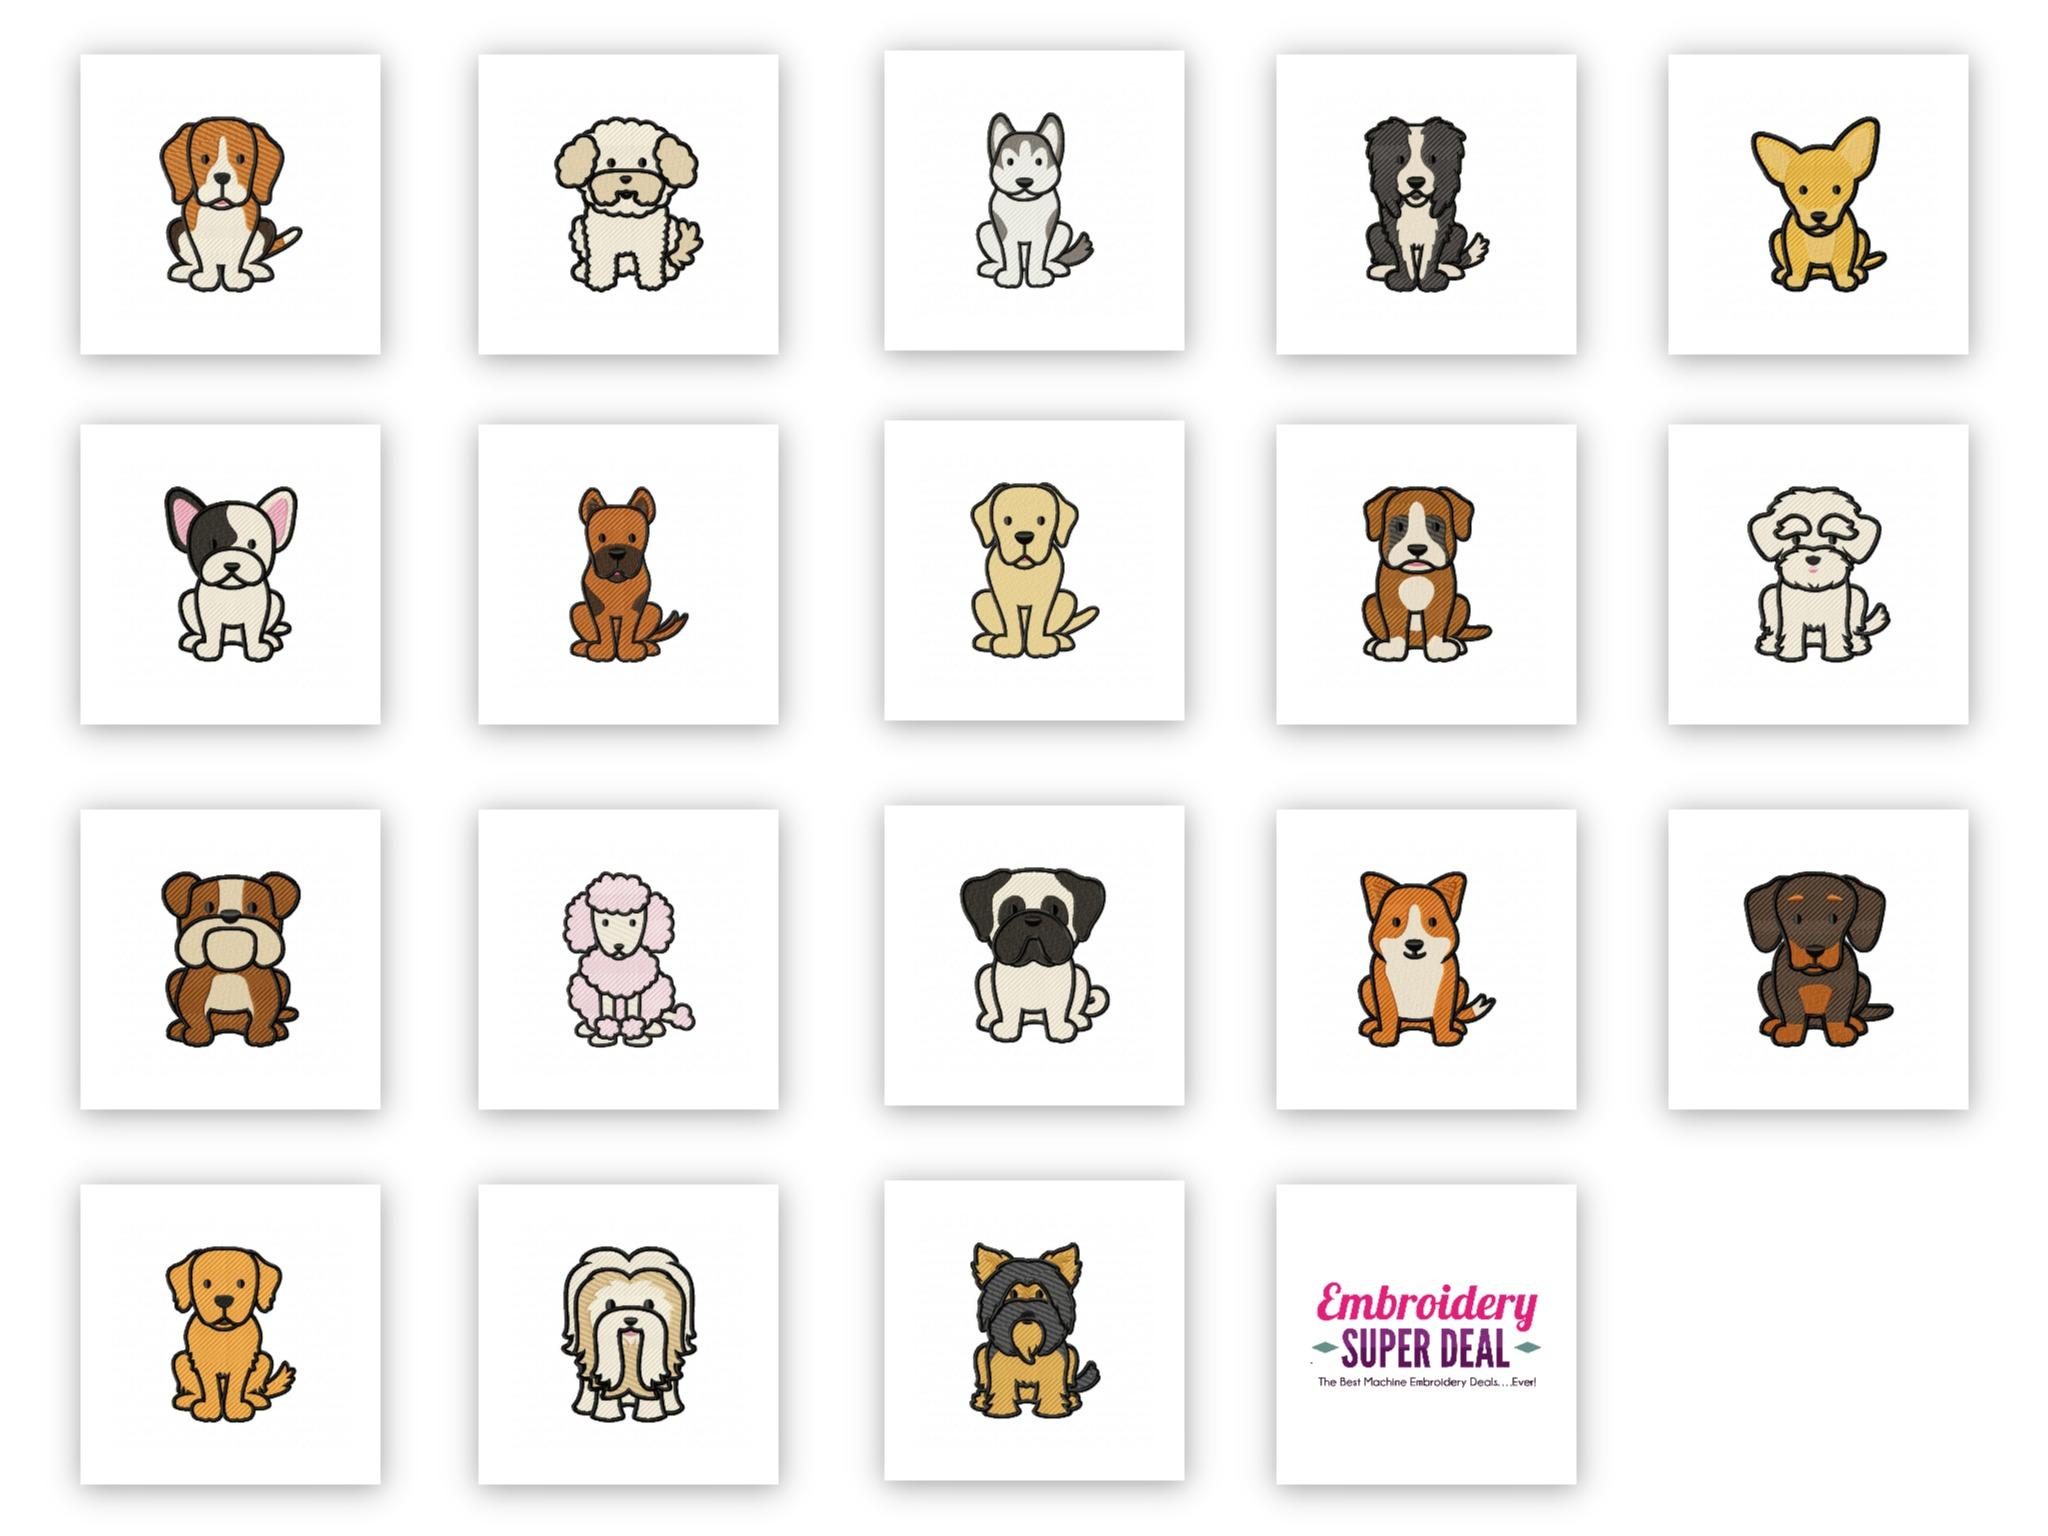 70 Designs – 36 Dog Breeds Embroidery Design Pack PLUS ...